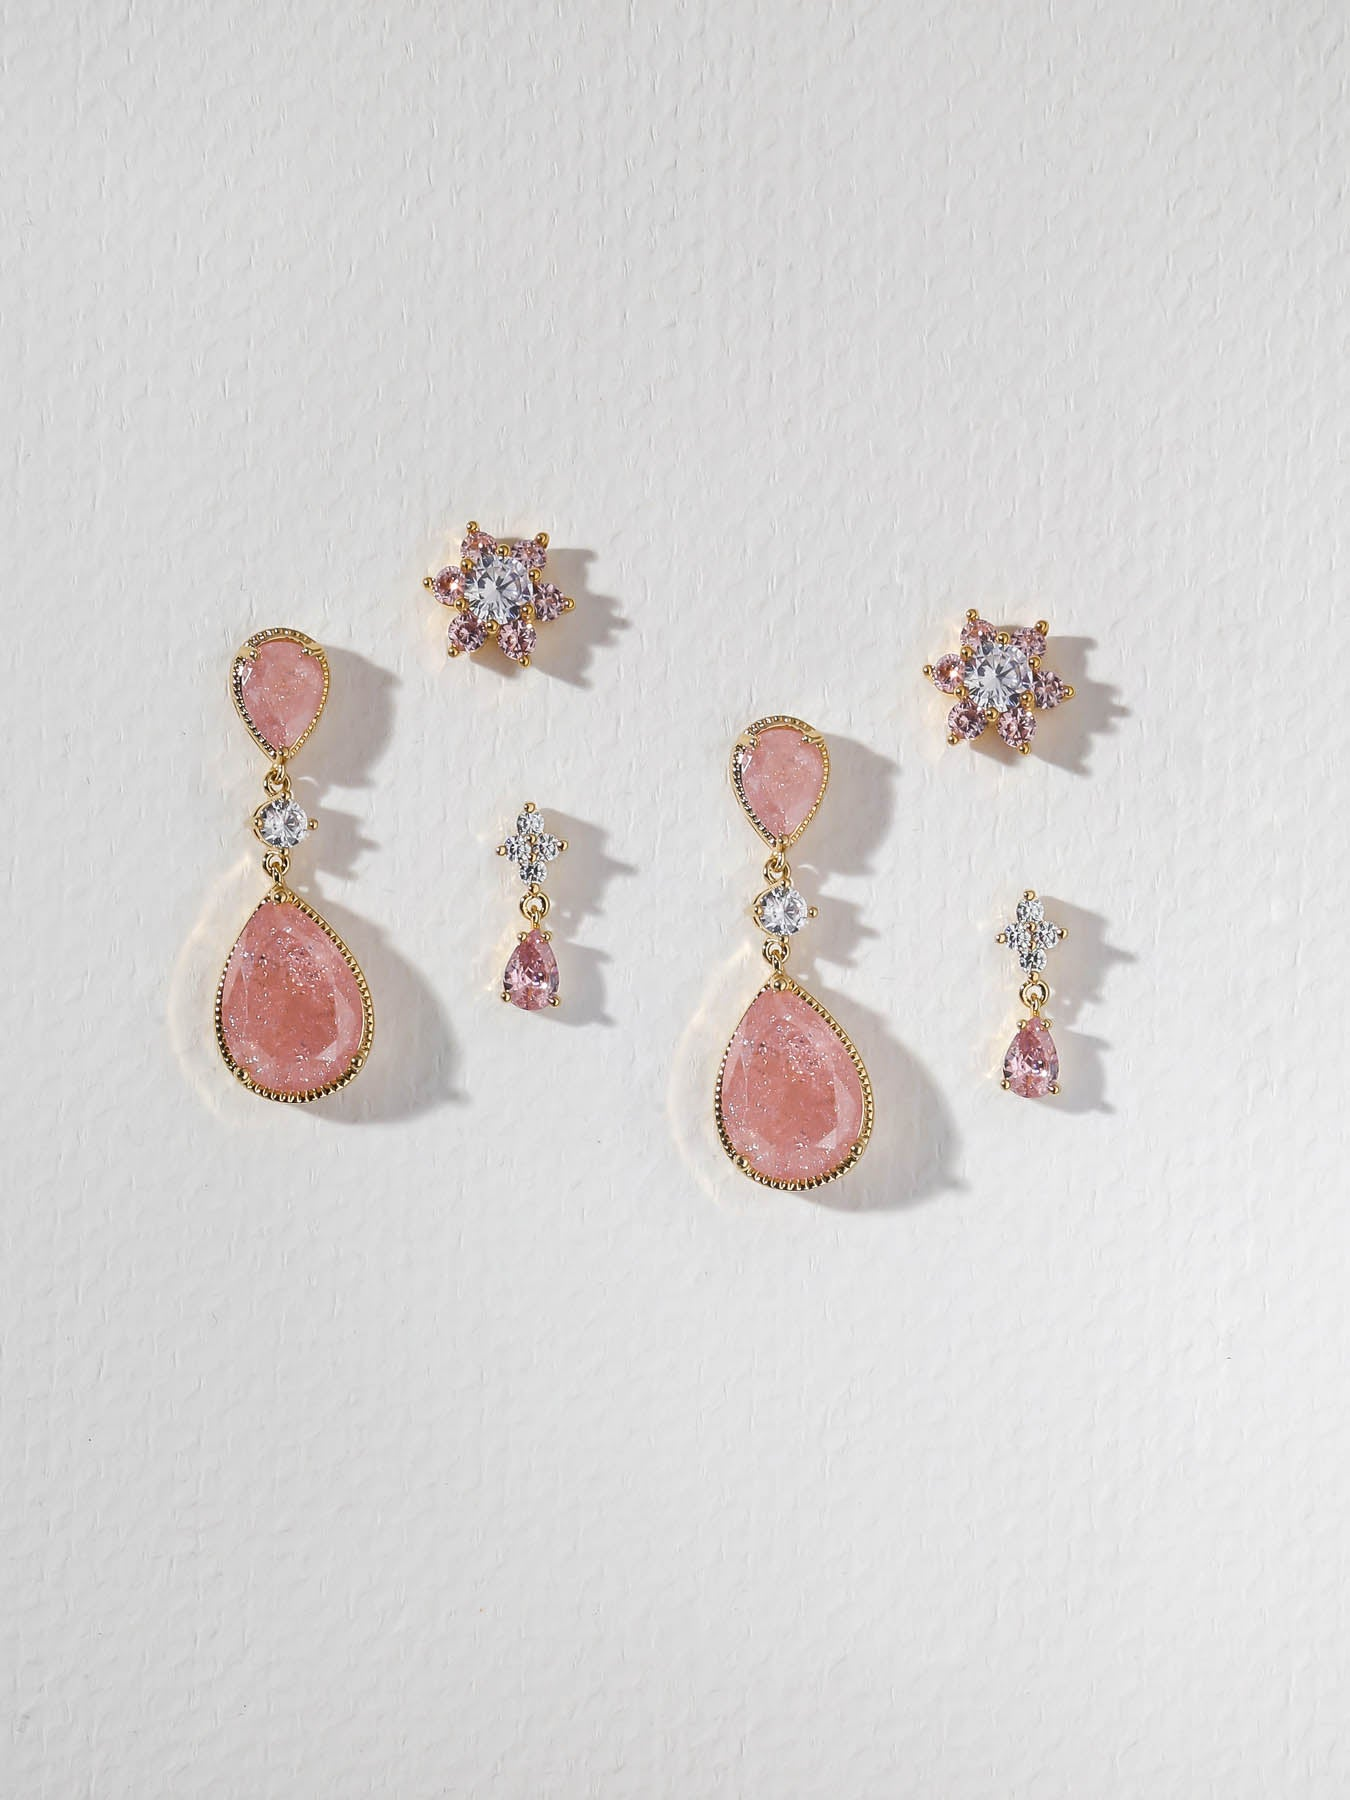 The Rose Quartz Earring Set